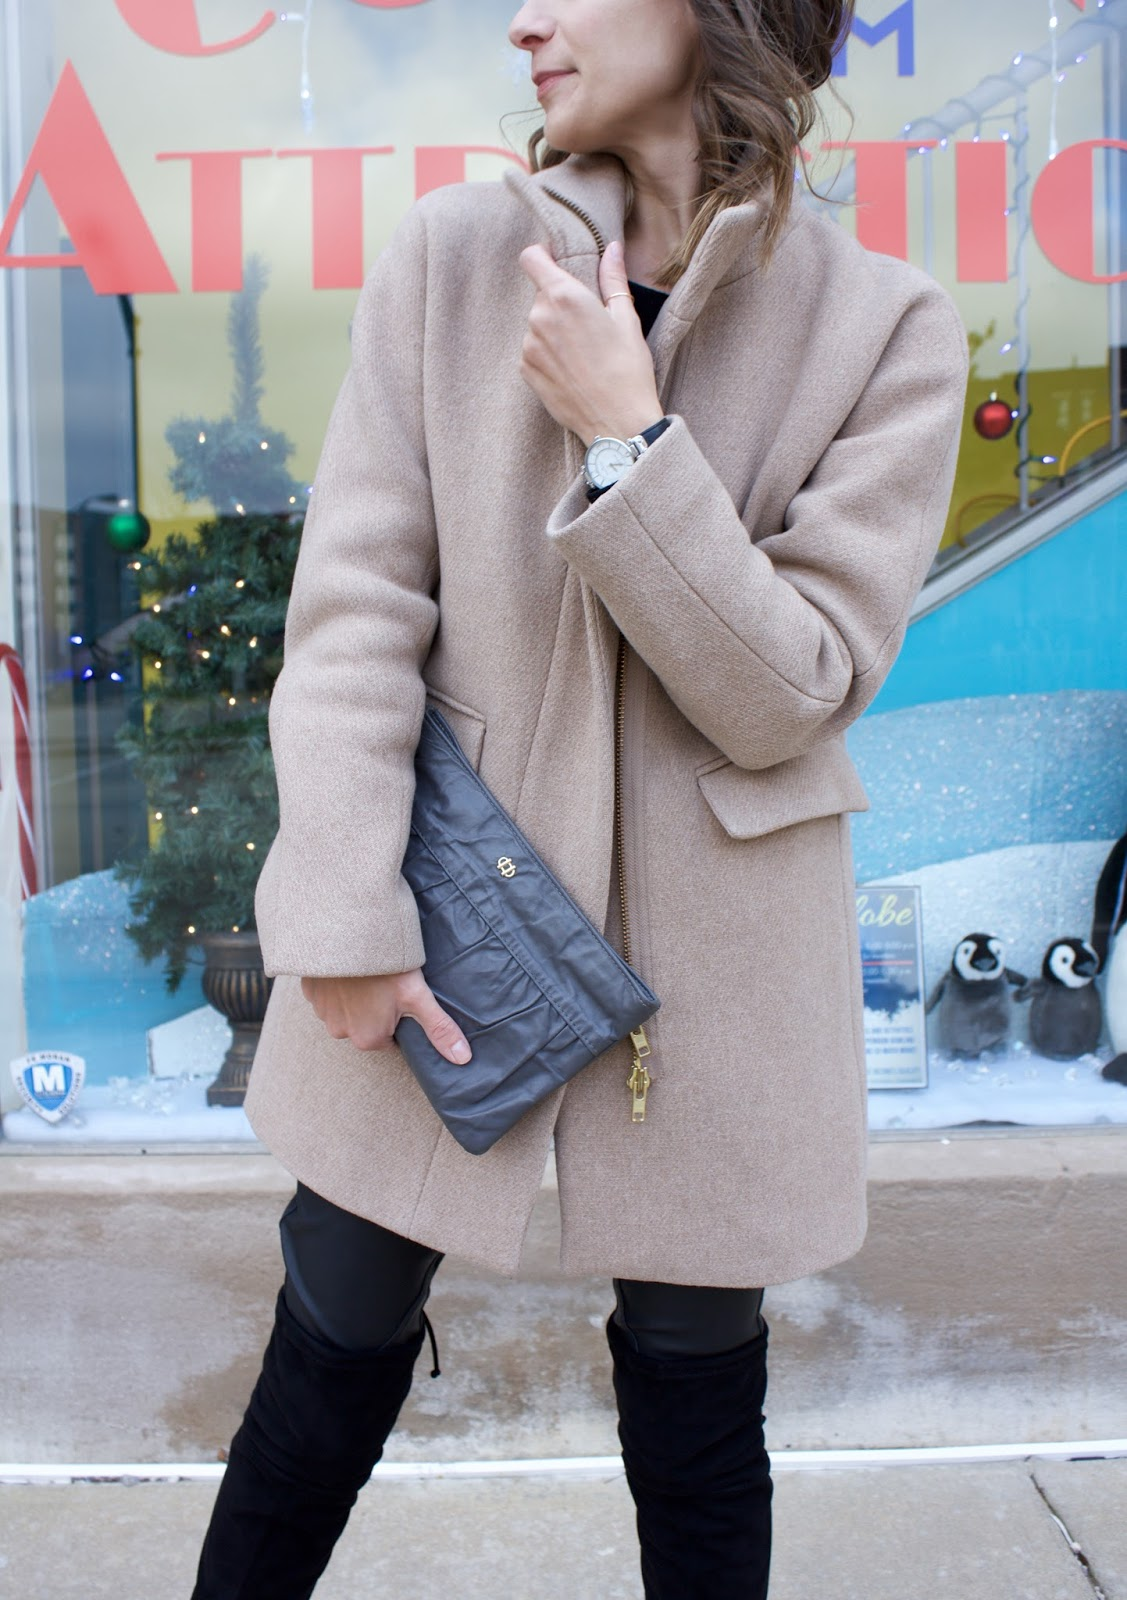 J.Crew camel winter coat